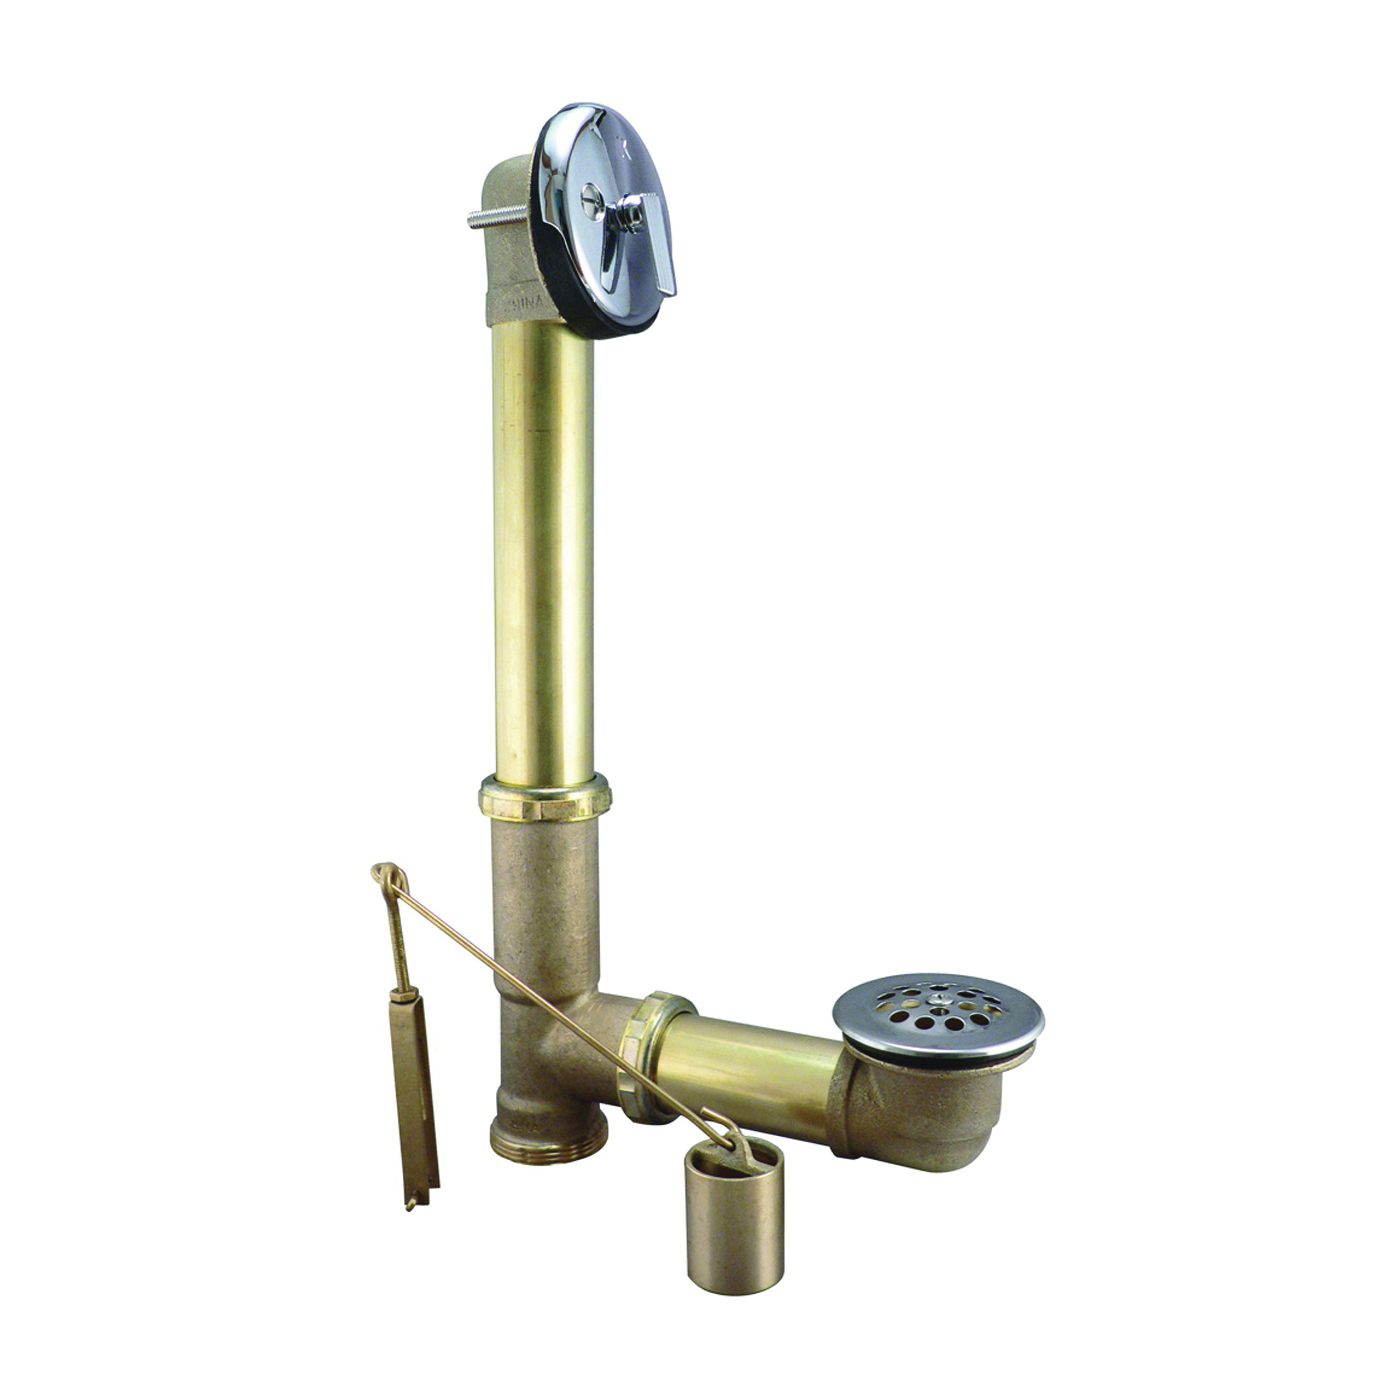 Picture of Keeney 606RB Bath Drain Assembly, Brass, Chrome, For: Built in Tubs